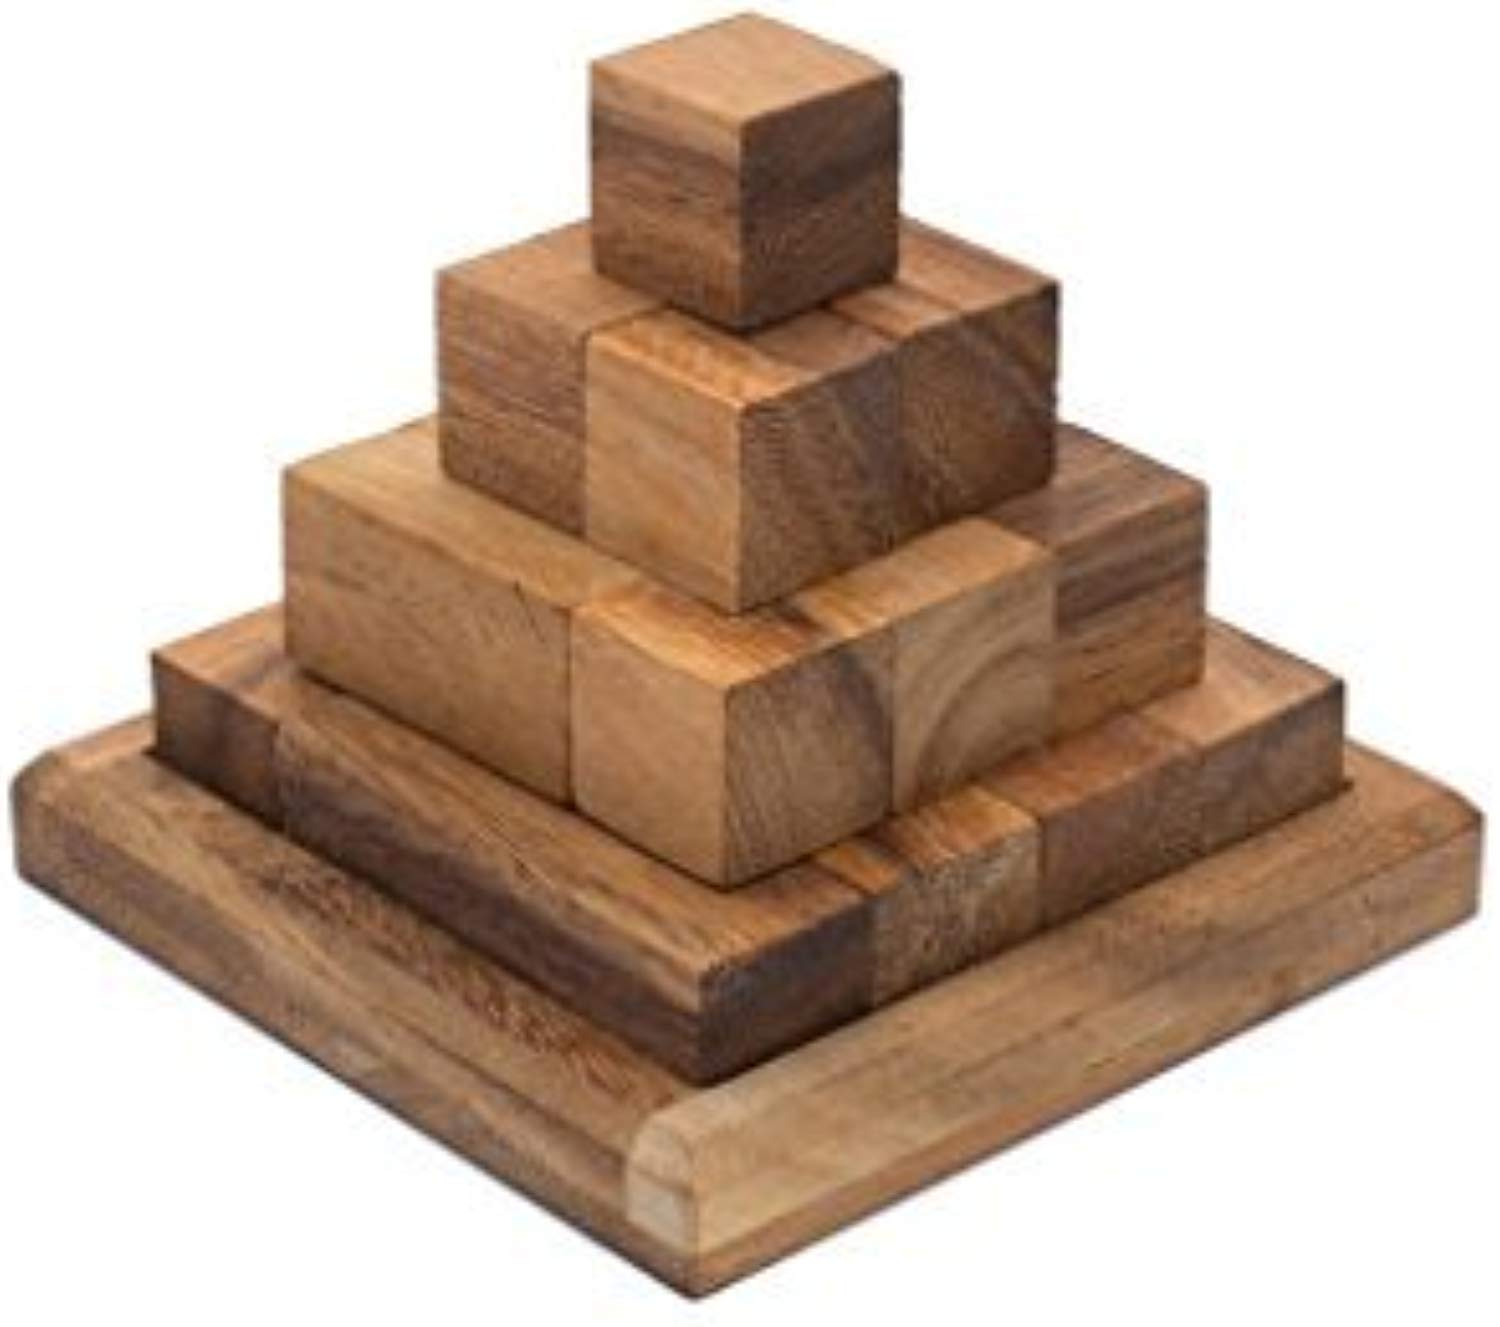 Siamuomodalay  Block Pyramid - Stacre Problem Puzzle - 3D Brain Teaser Adults - Interlocre & Mechanical Puzzle by Siam uomodalay